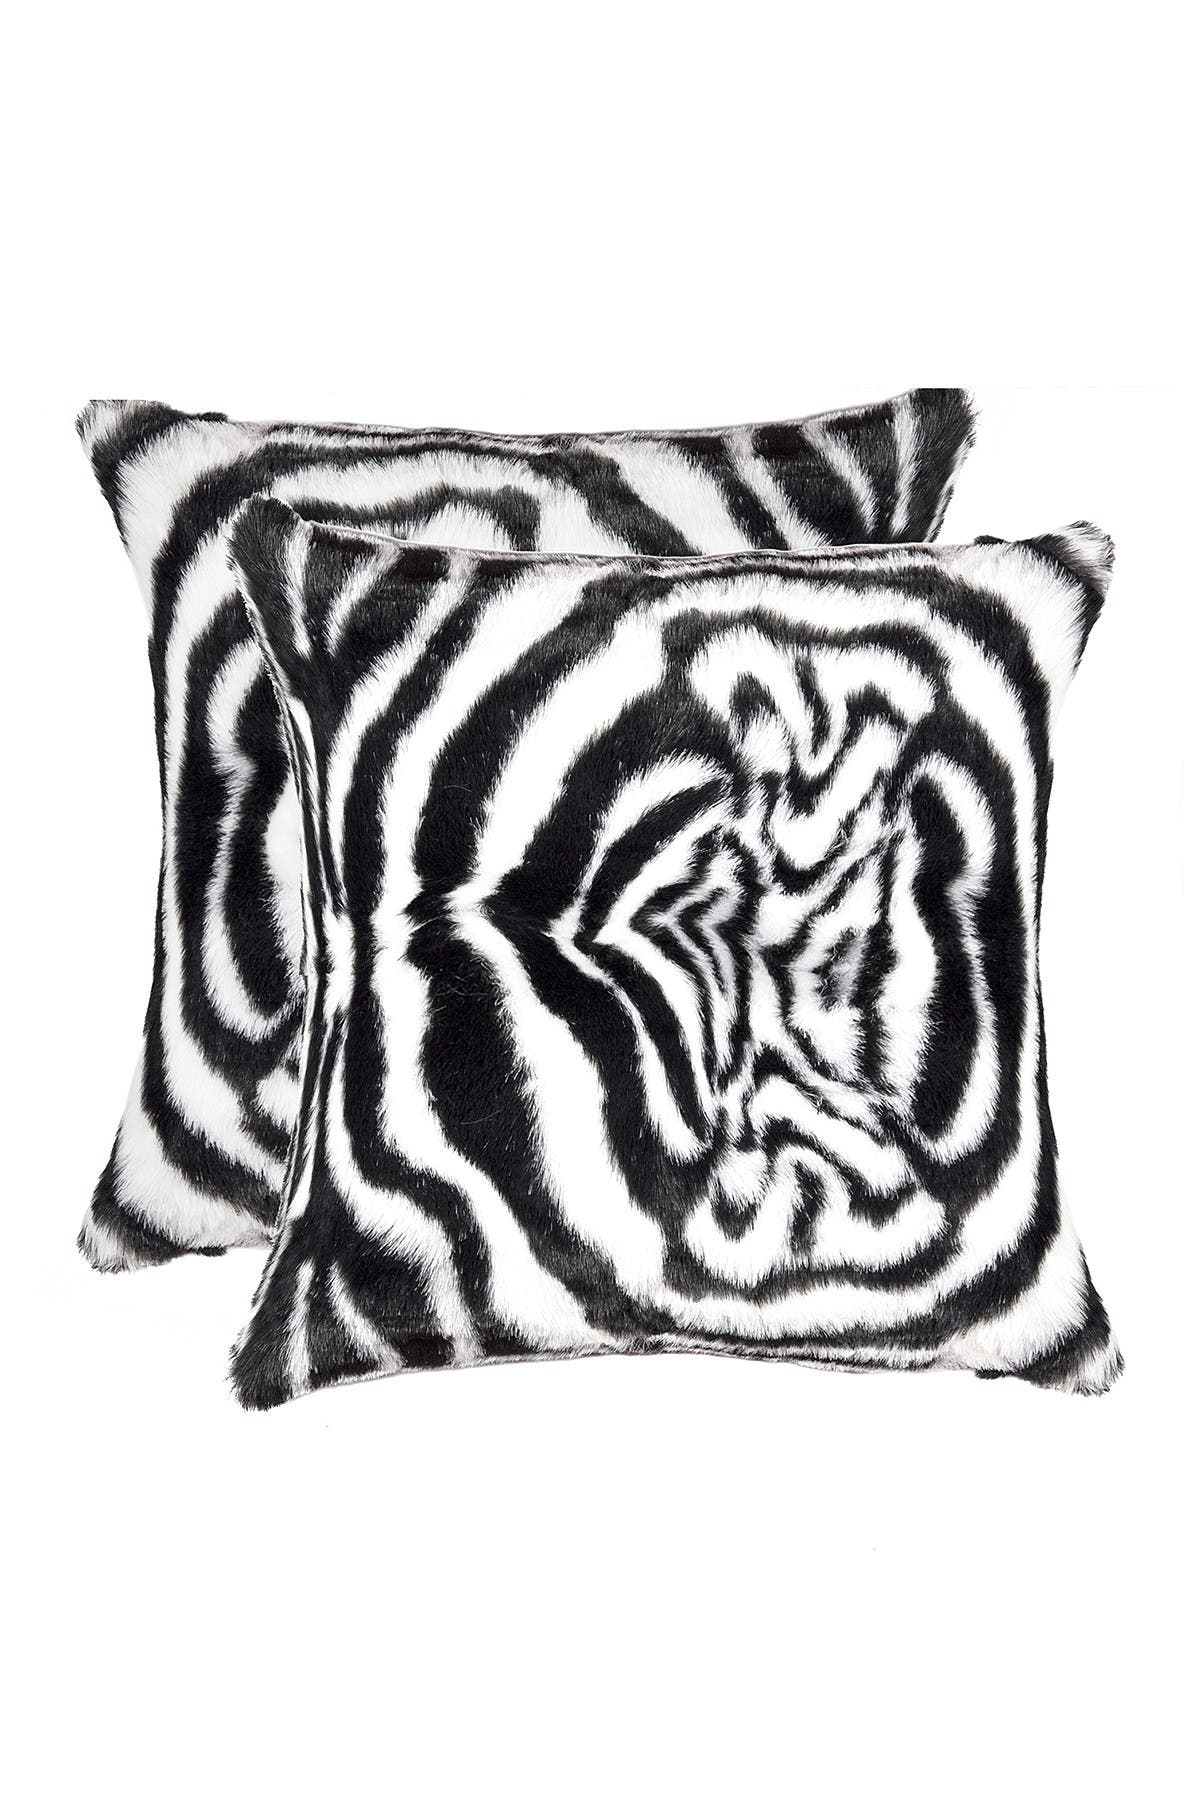 "Image of LUXE Belton Faux Fur Pillow - Set of 2 - 18"" x 18"" - Denton Zebra Black/White"